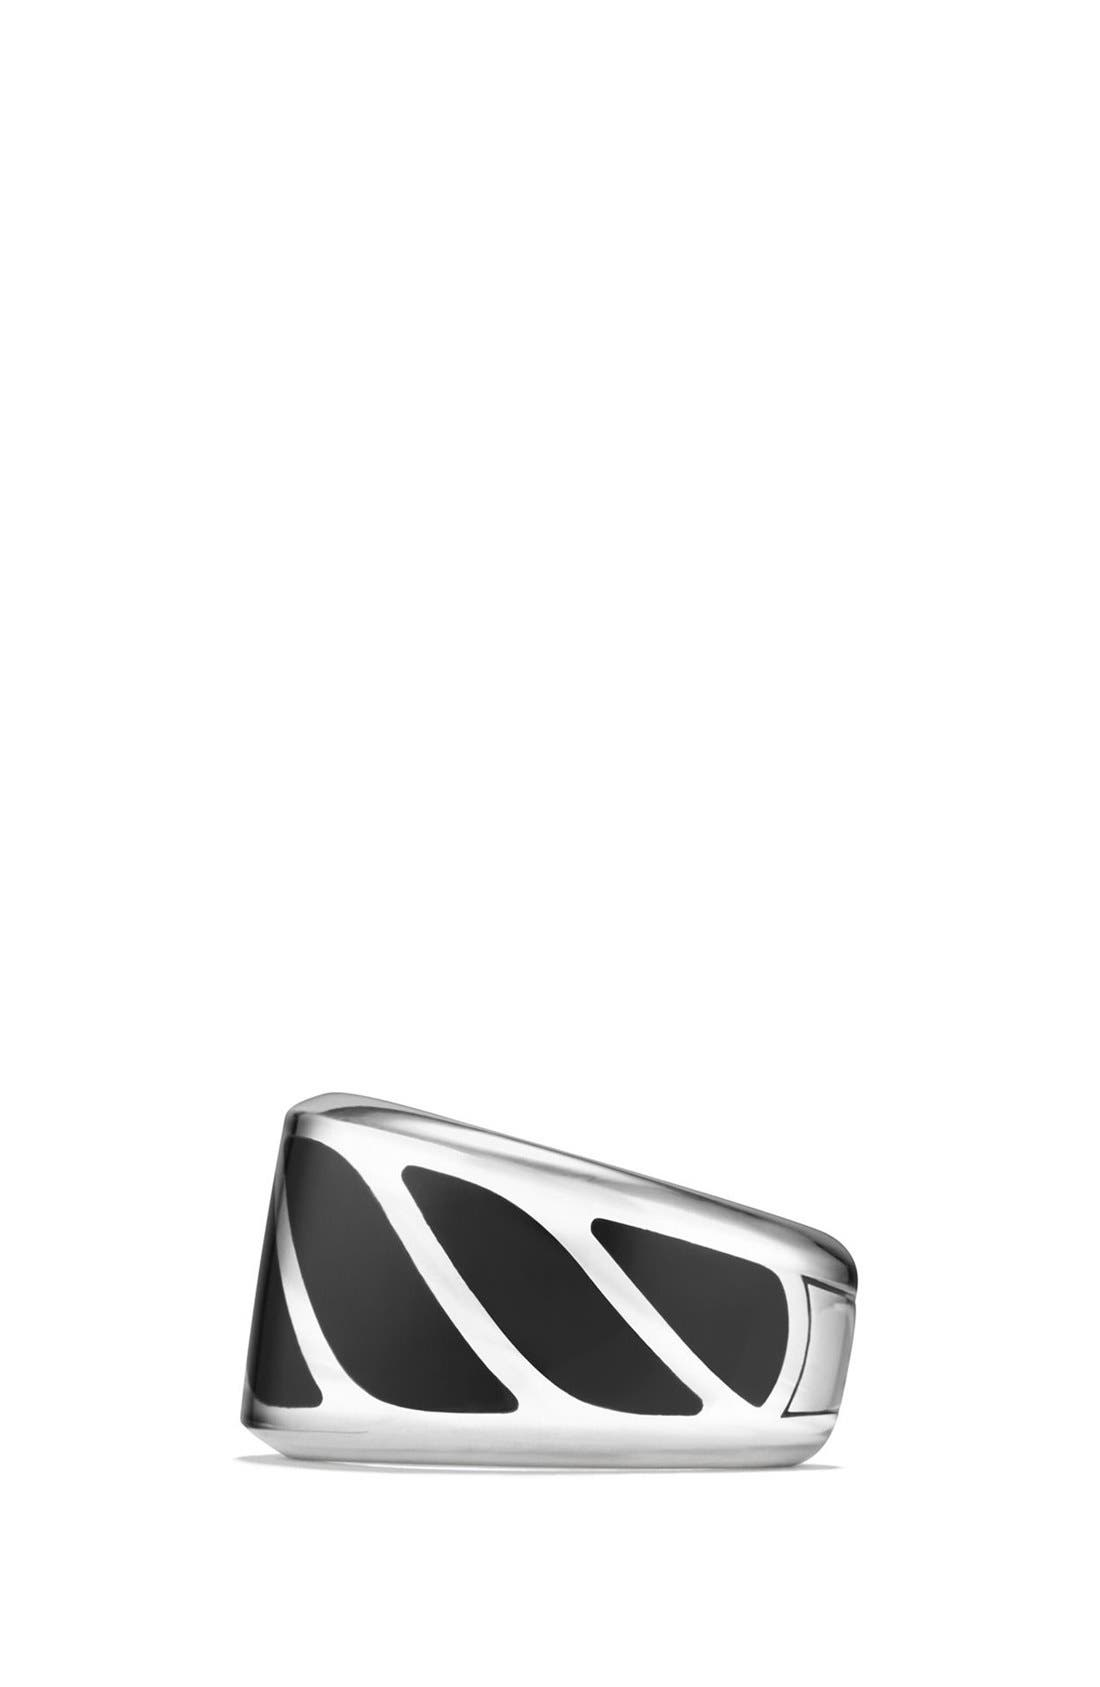 'Graphic Cable' Band Ring,                             Alternate thumbnail 3, color,                             SILVER/ BLACK ONYX